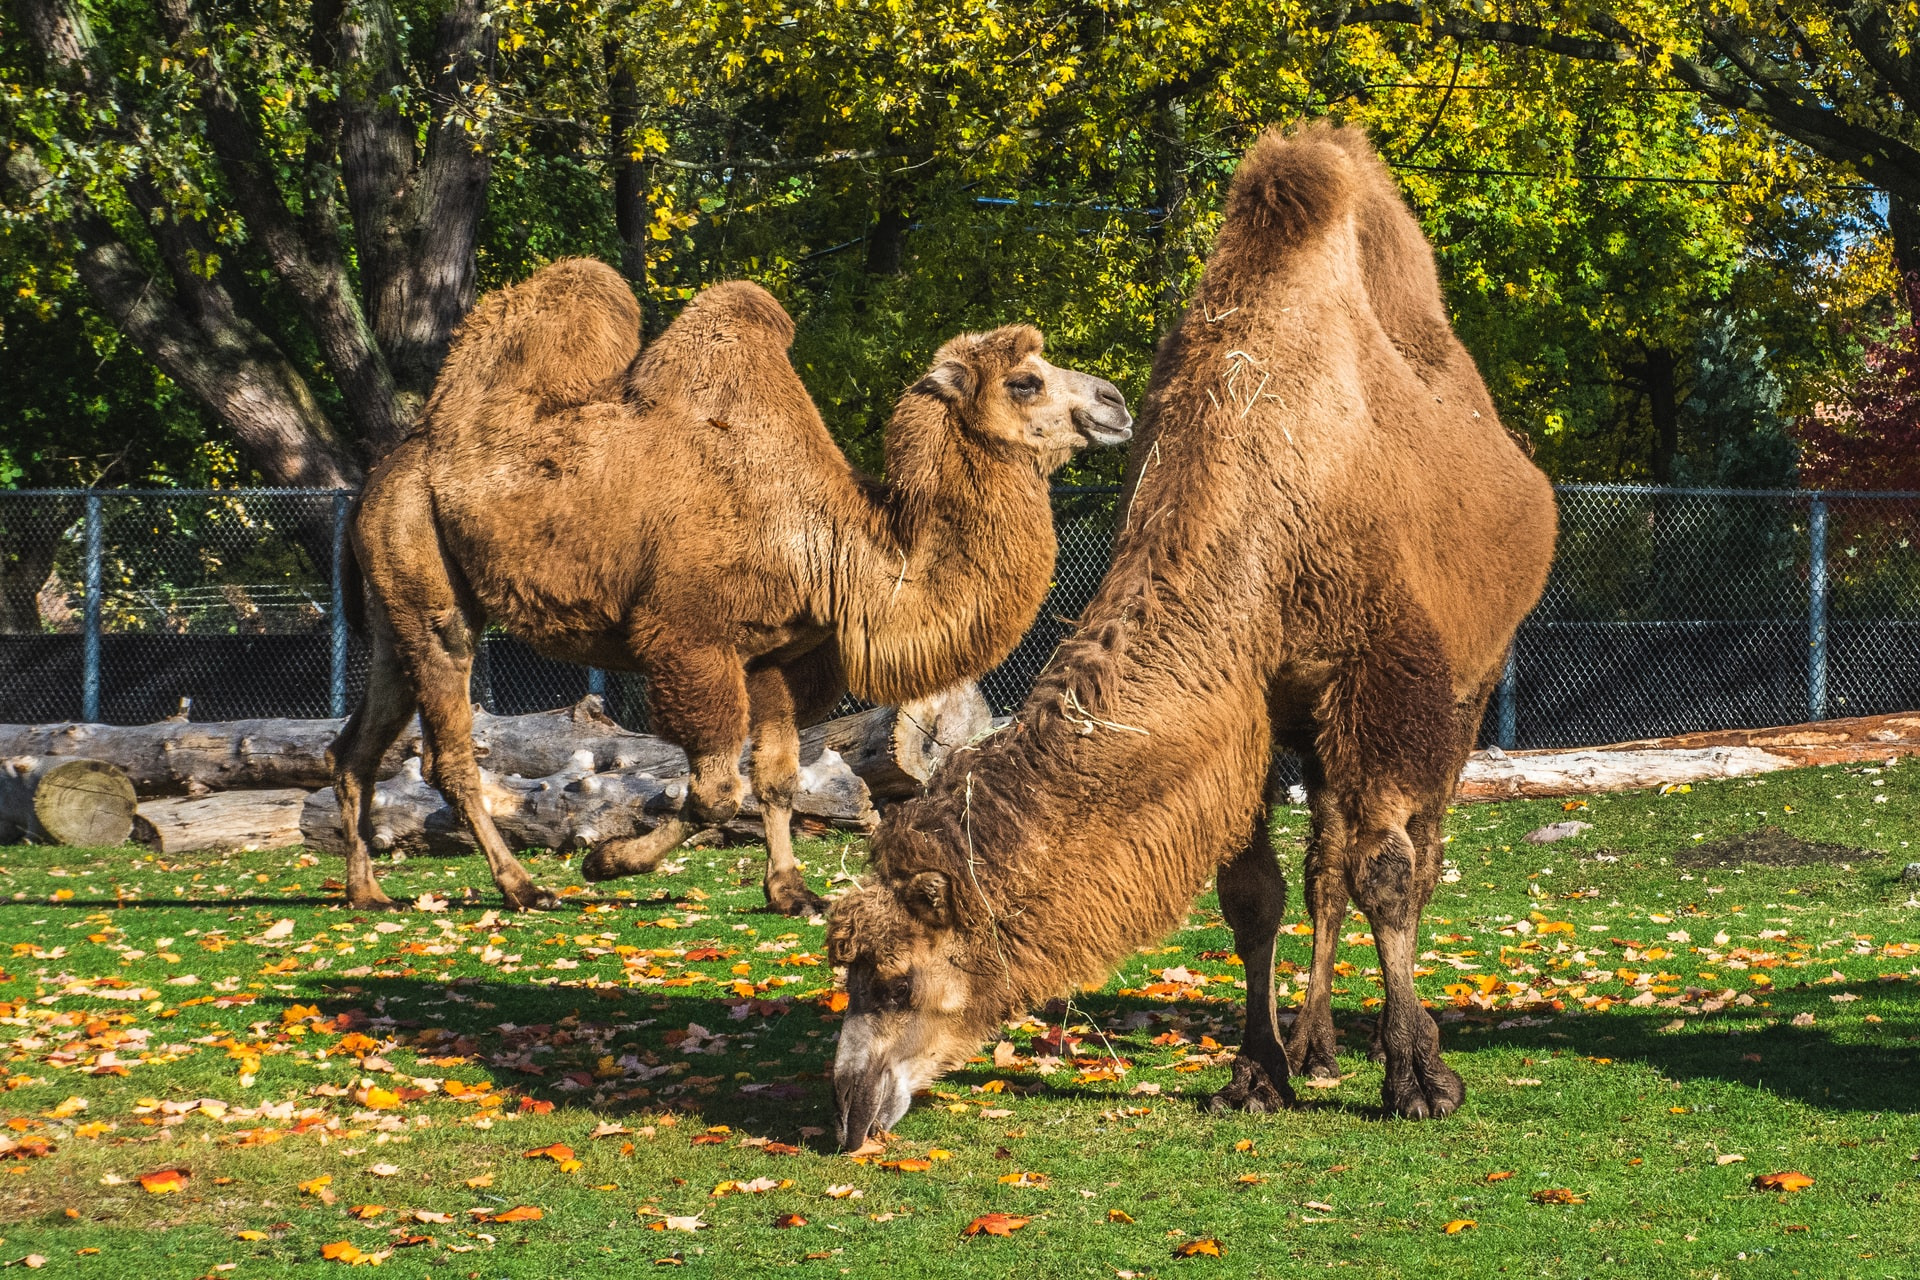 Camels at the Detroit Zoo